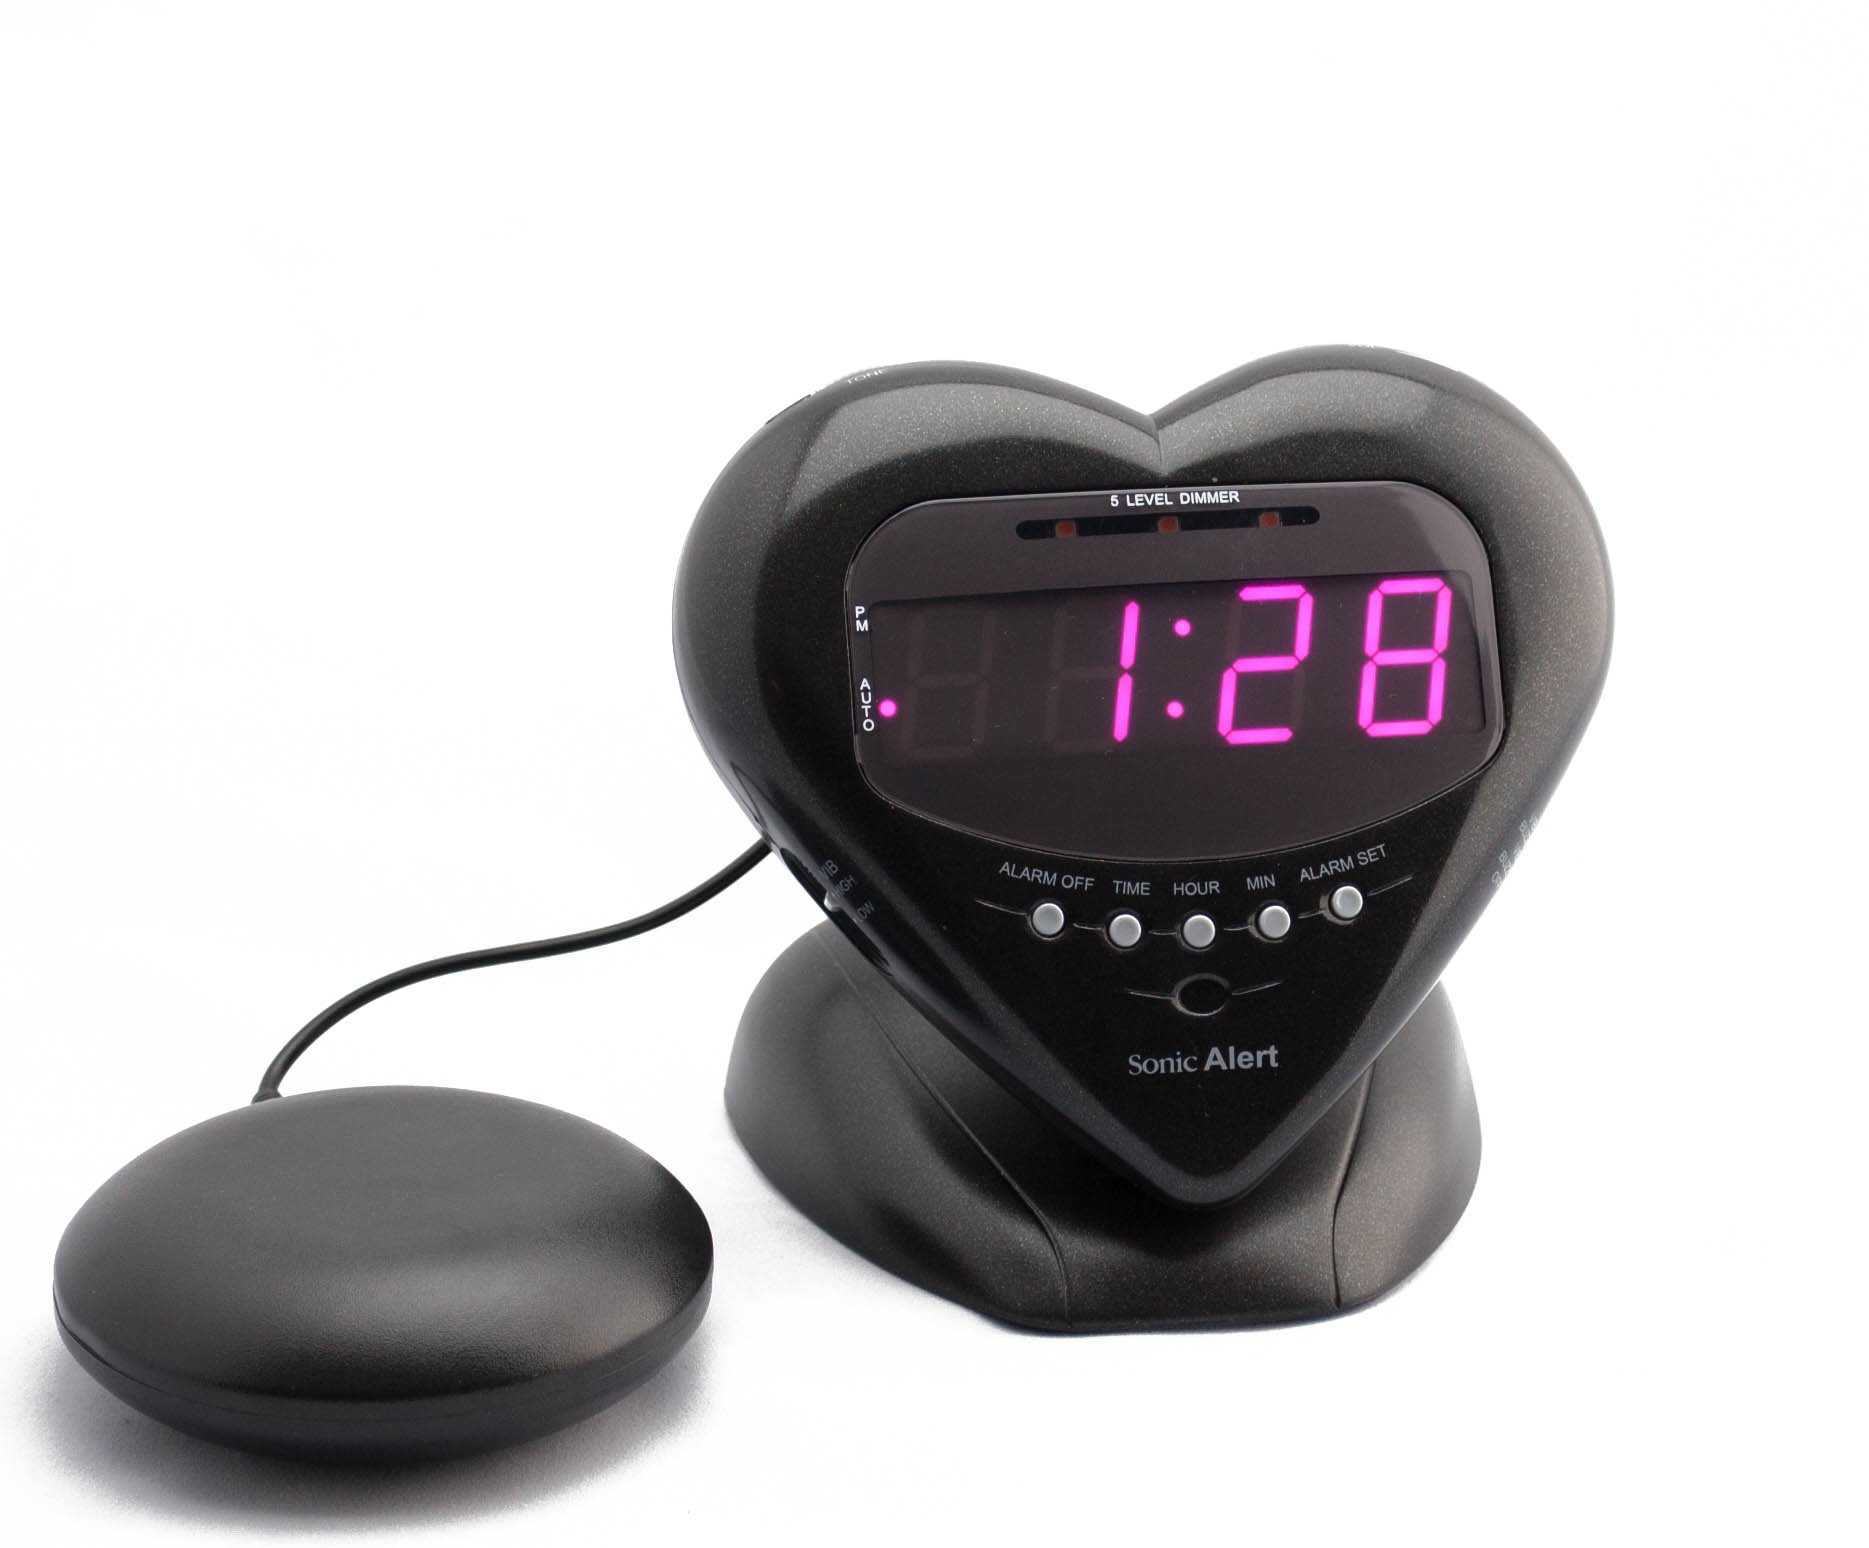 Sonic Alert Sonic Bomb by Extra Loud Heart Alarm Clock with Bed Shaker Vibrator. For Heavy Sleepers, Teenagers, People with Hearing Loss, Seniors, and the Deaf - Sonic Boom Metallic Black - SBH400SSB